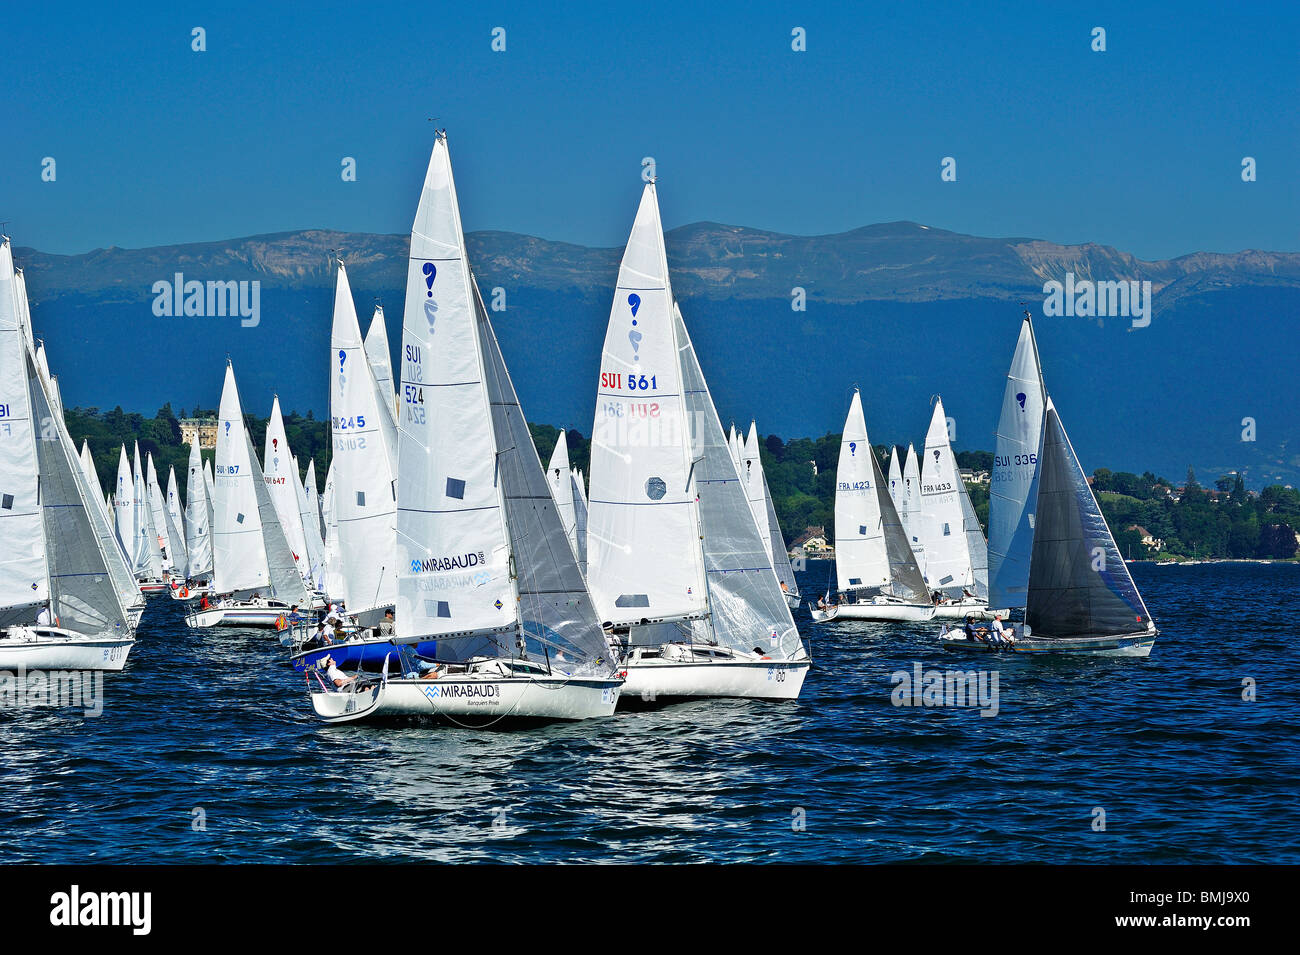 Start of the 2009 Bol d'Or yacht race on Lac Leman (Lake Geneva) with the Jura Mountains in the background. Stock Photo